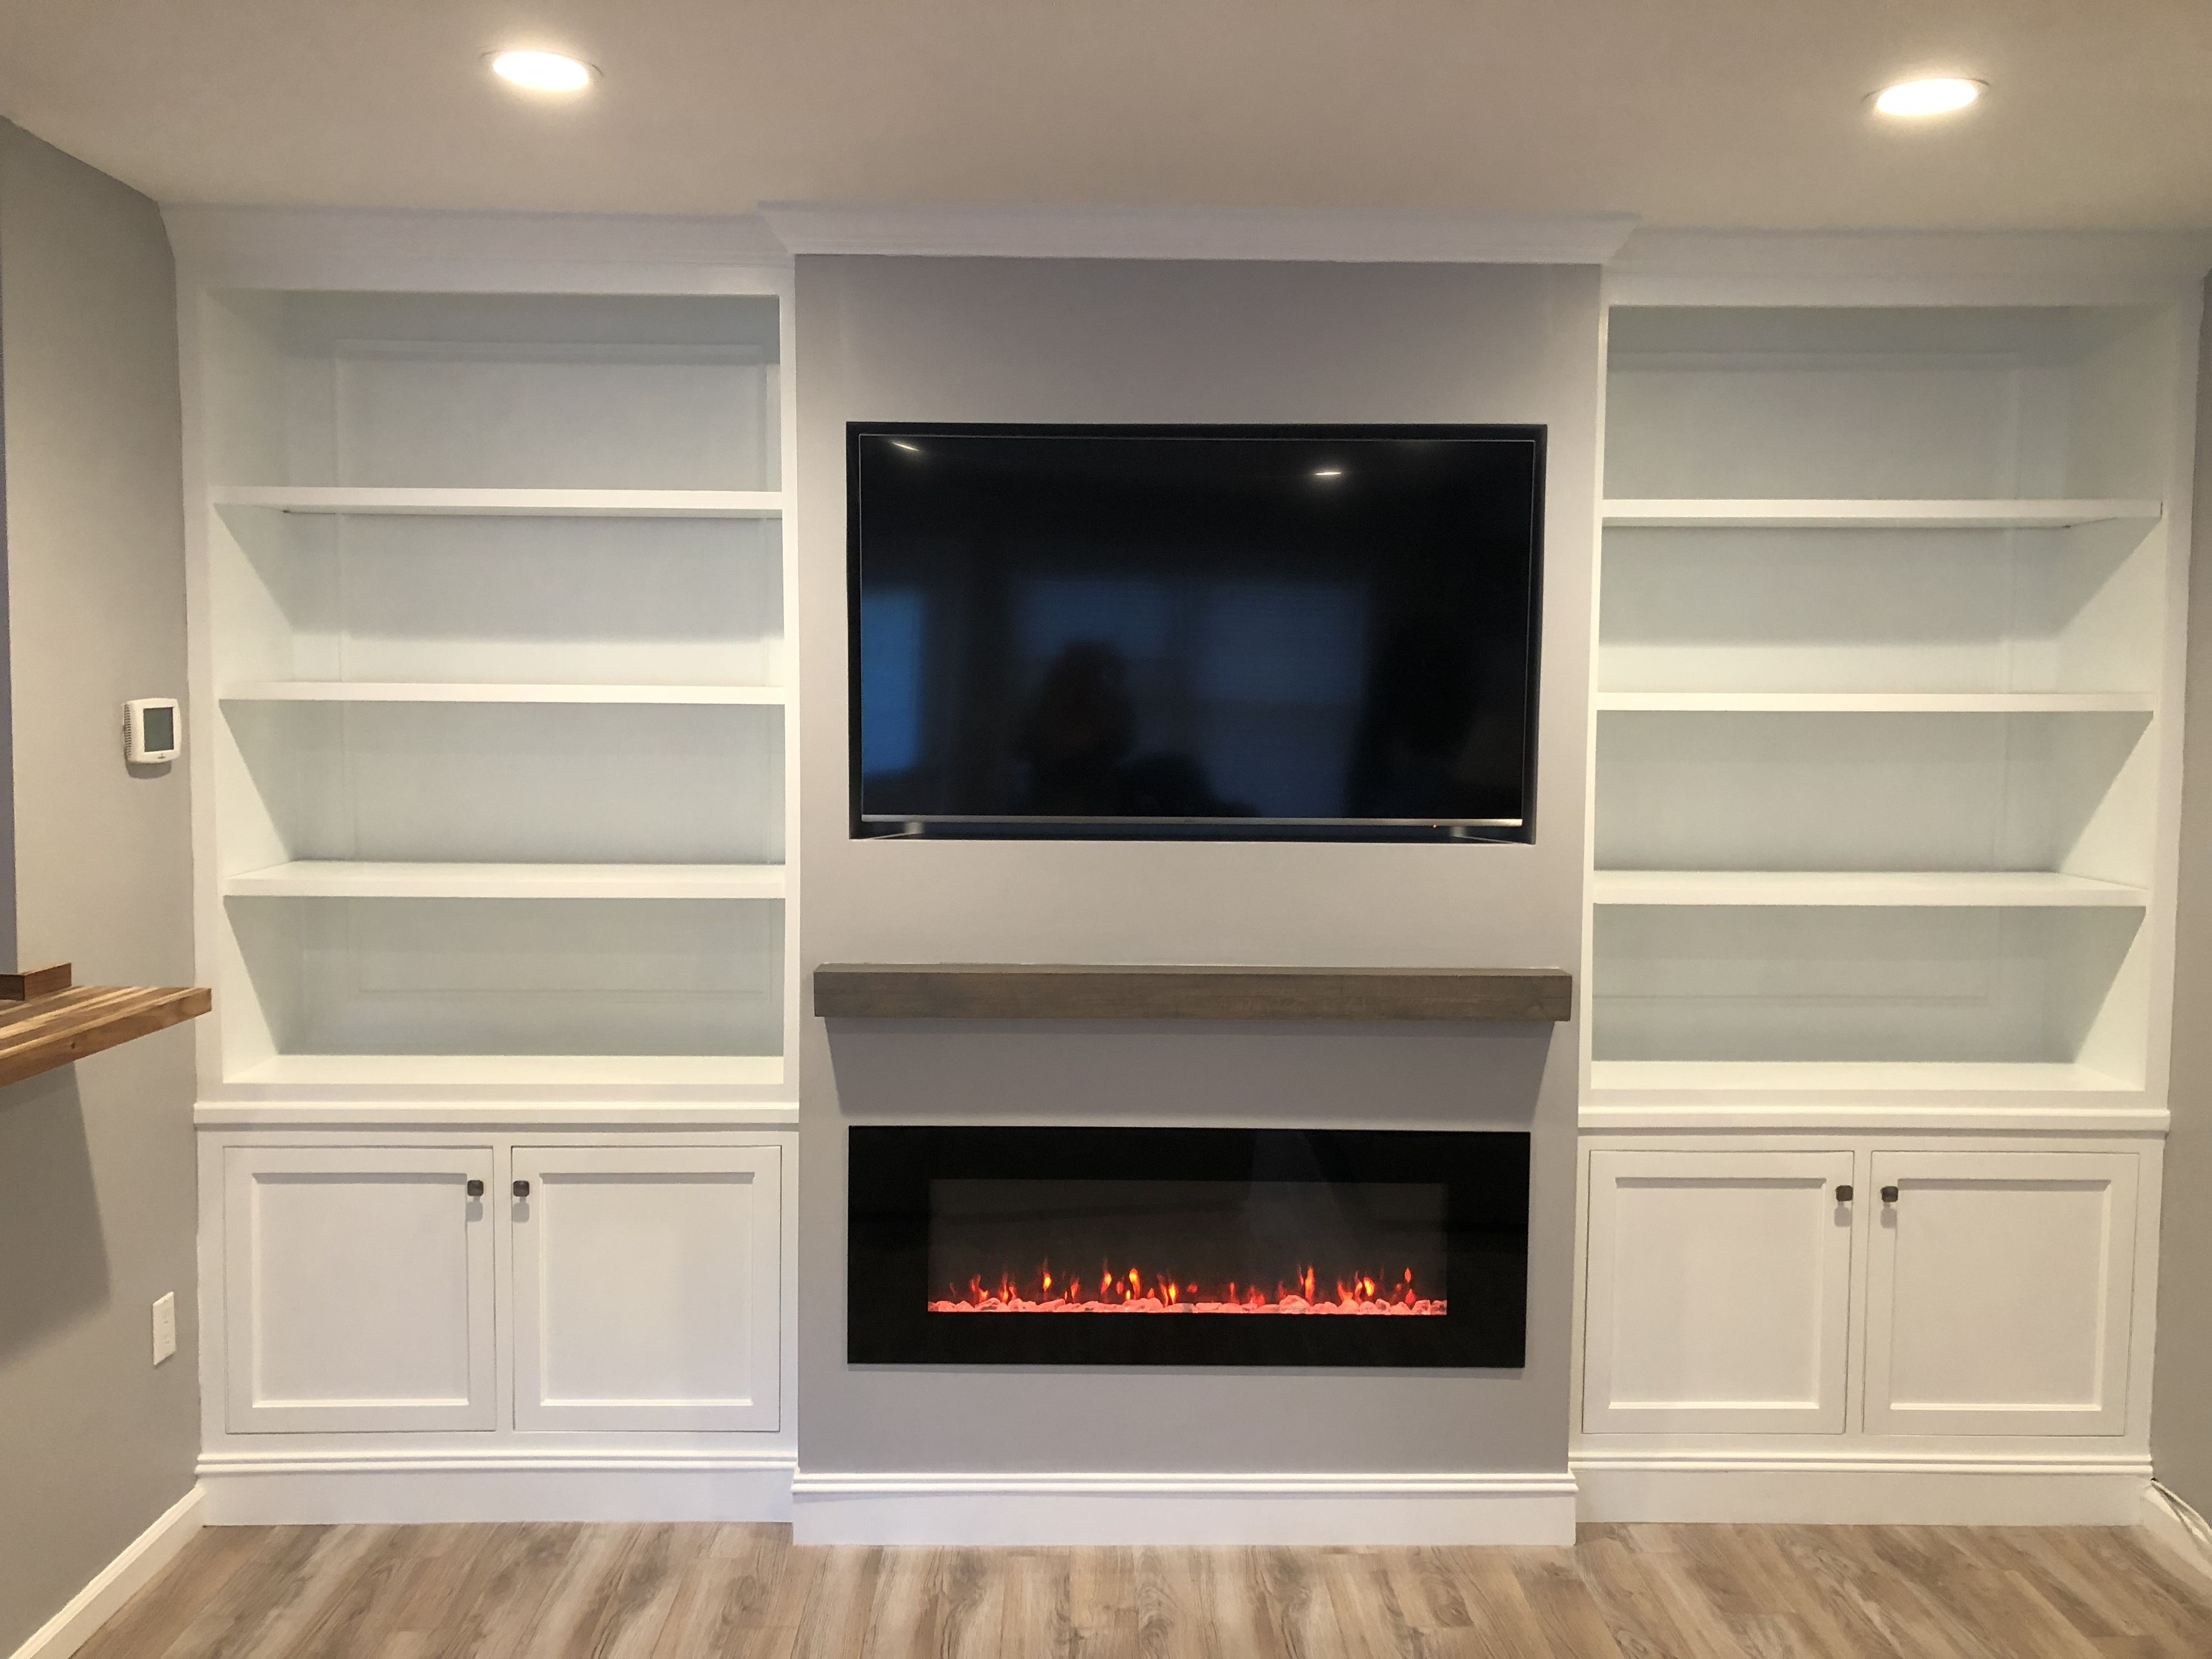 Custom Built In Shelves And Cabinetry With Rustic Mantle Mounted Flat Screen Tv And Modern Electr Linear Fireplace Modern Electric Fireplace Custom Built Ins